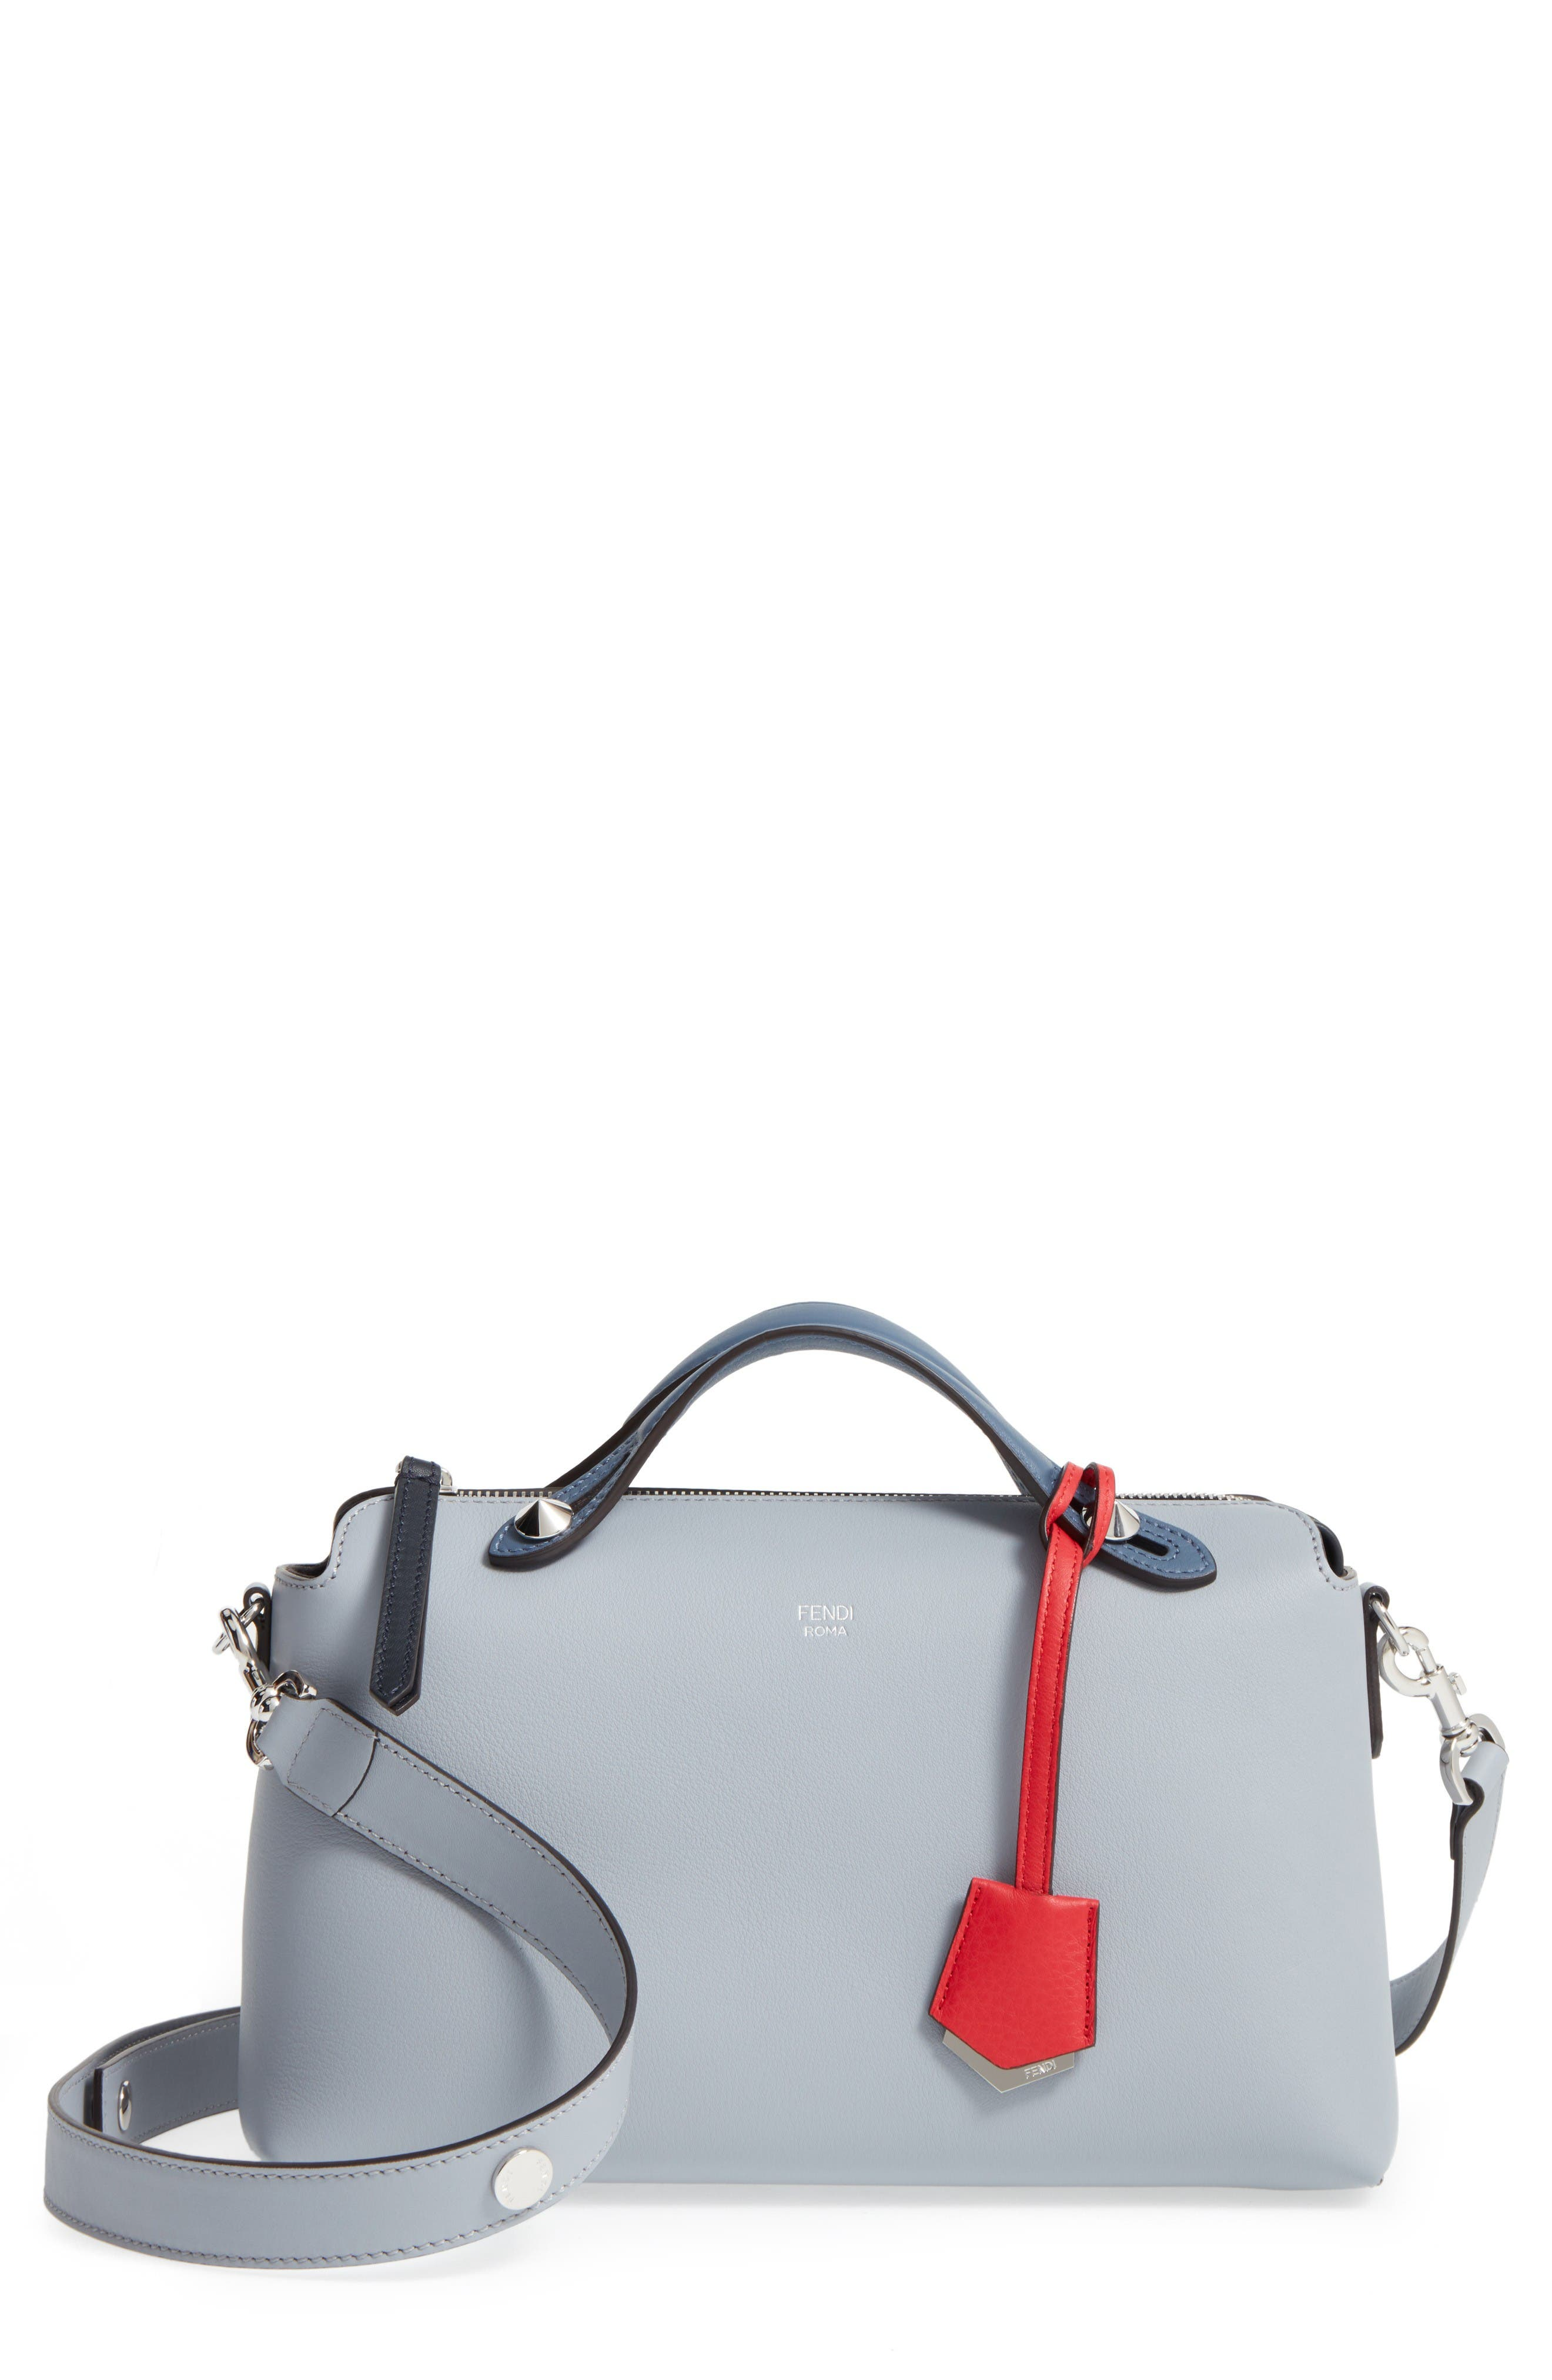 FENDI 'Medium By the Way' Colorblock Leather Shoulder